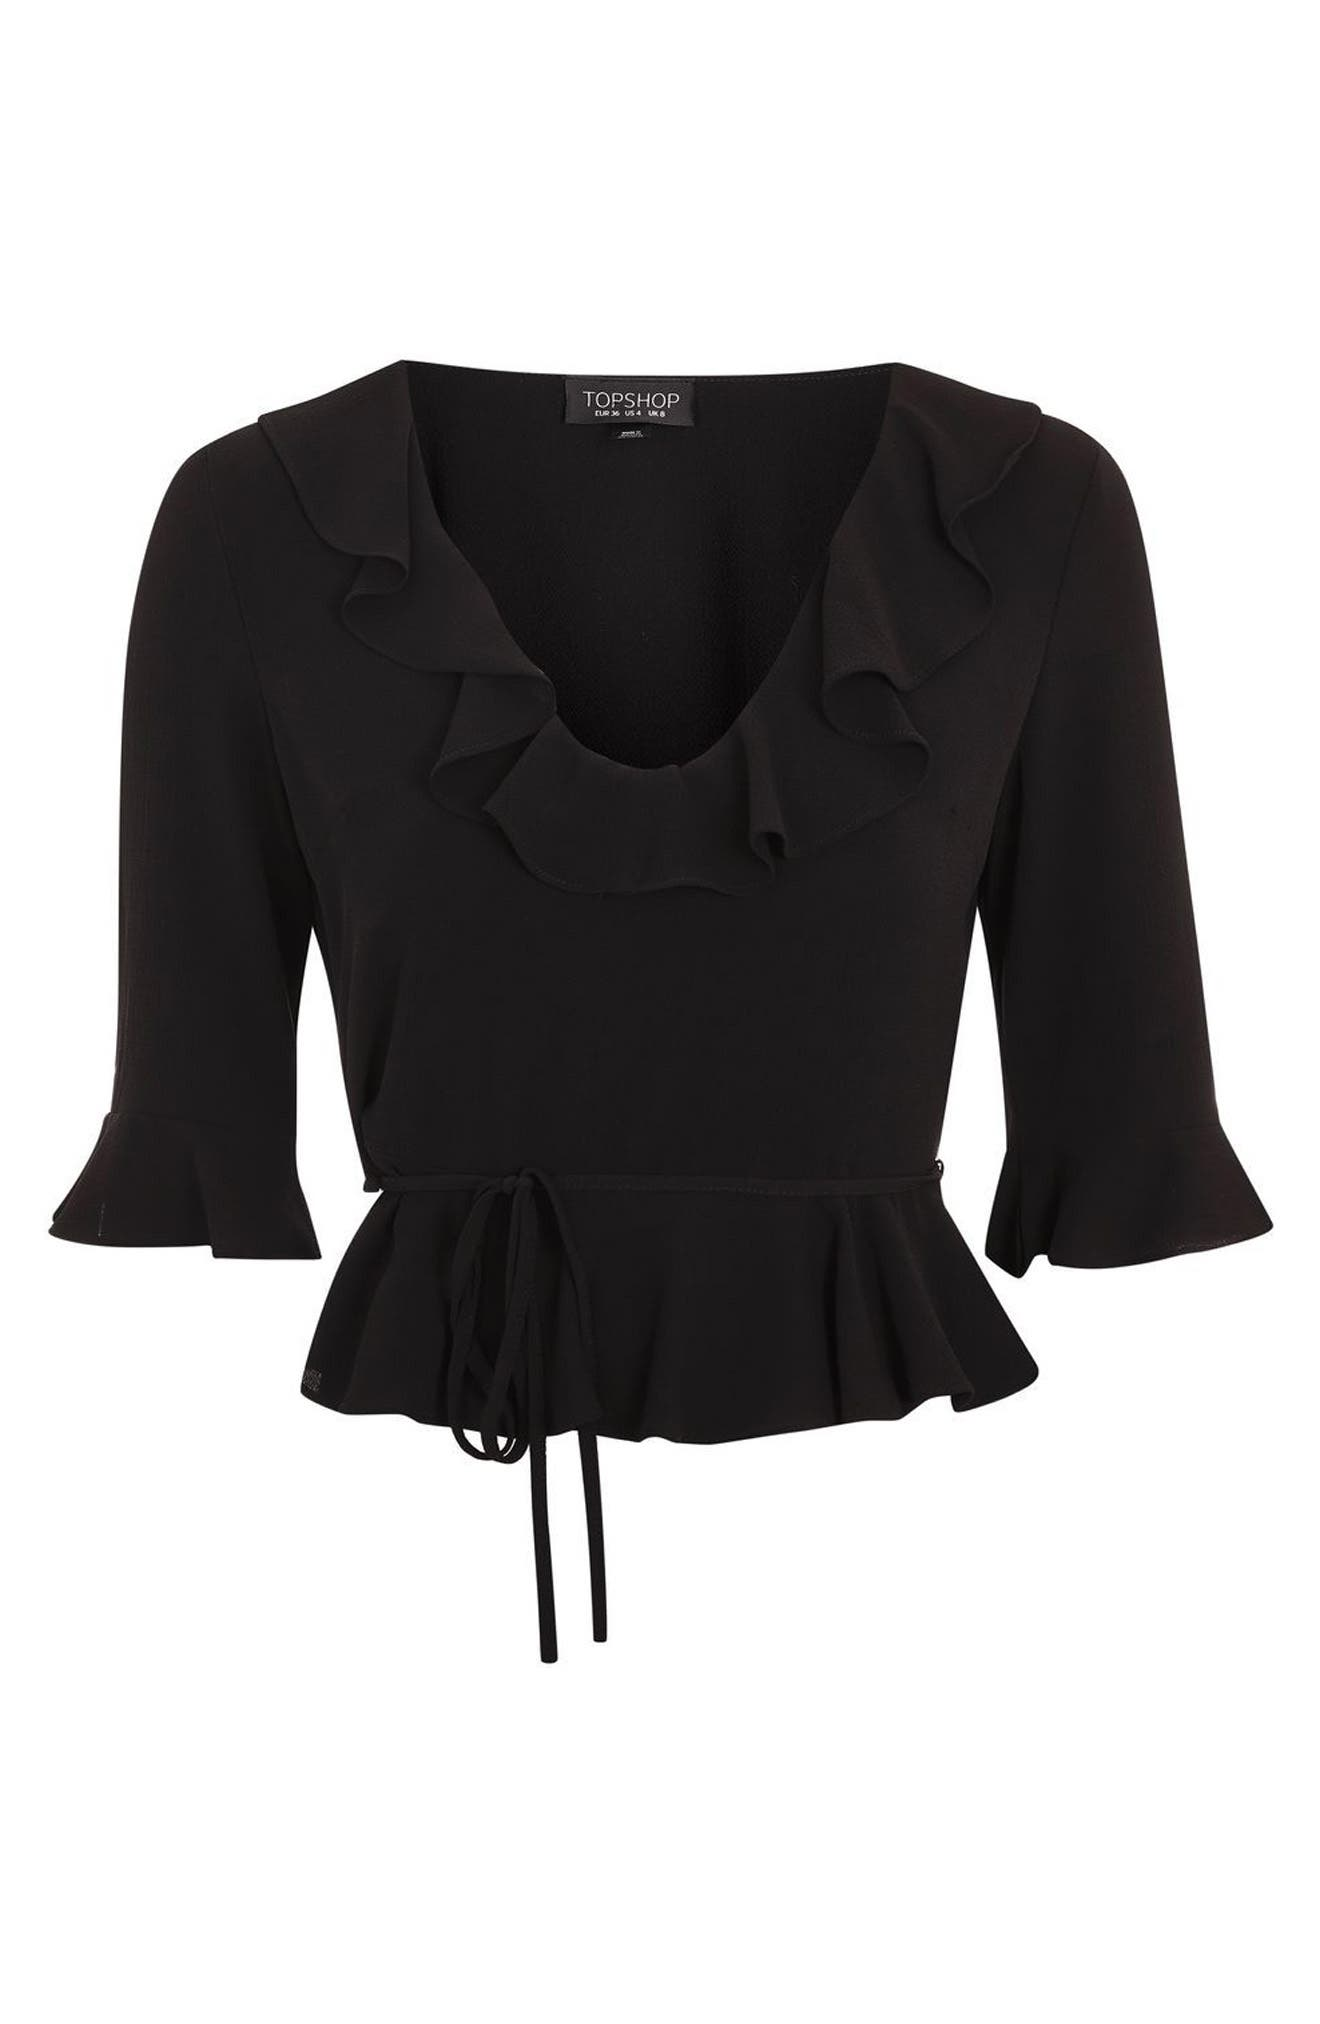 Phoebe Frilly Blouse,                             Alternate thumbnail 4, color,                             001